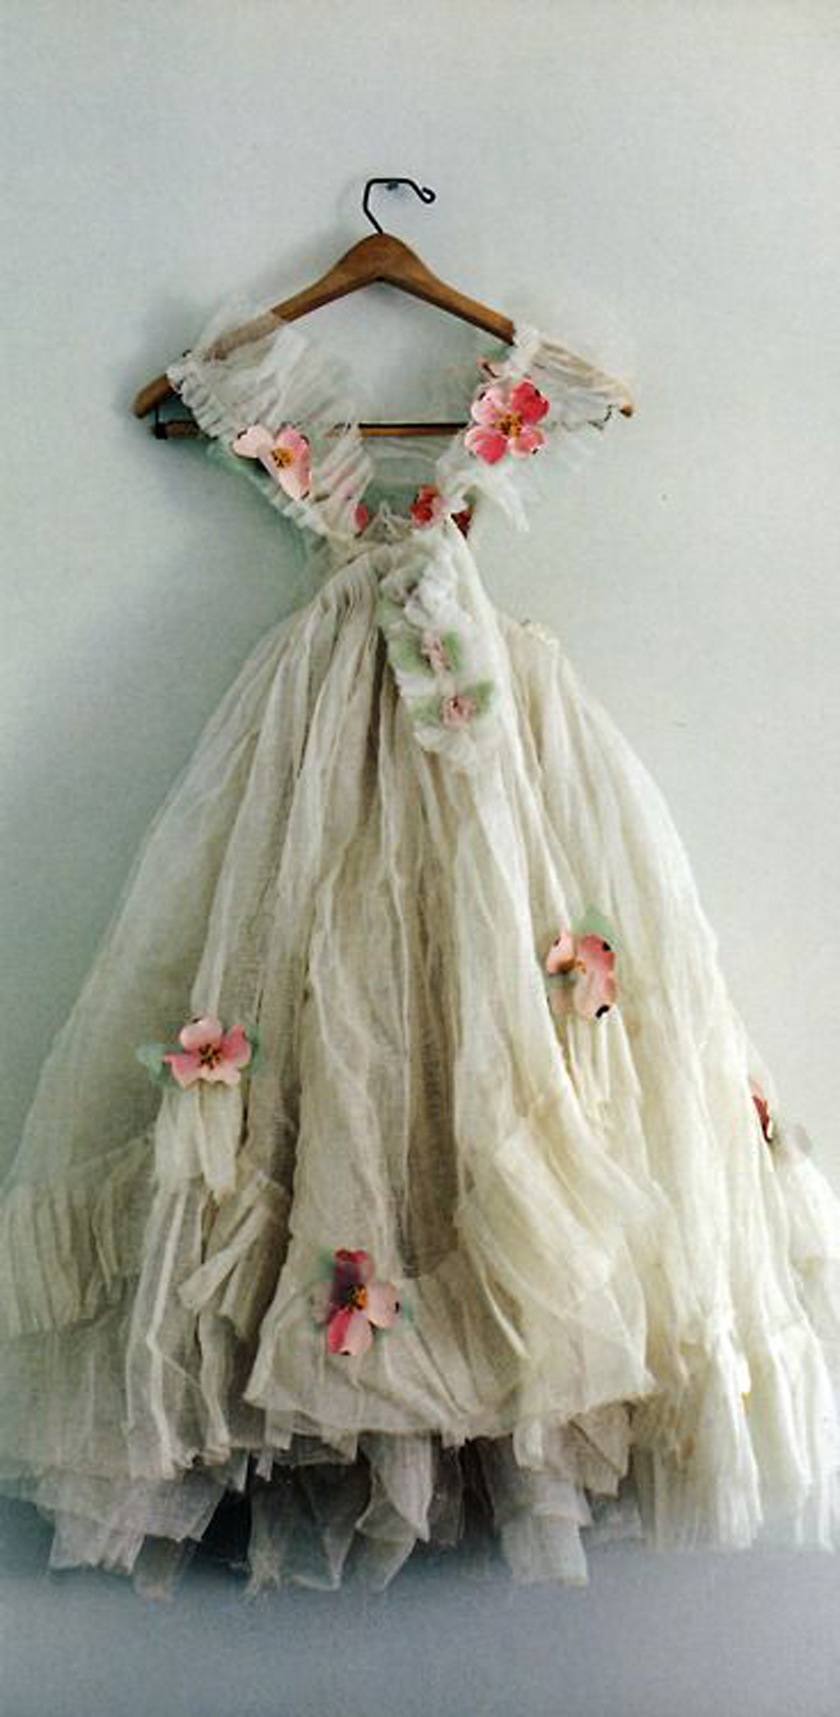 dreams_fields_hangingdress